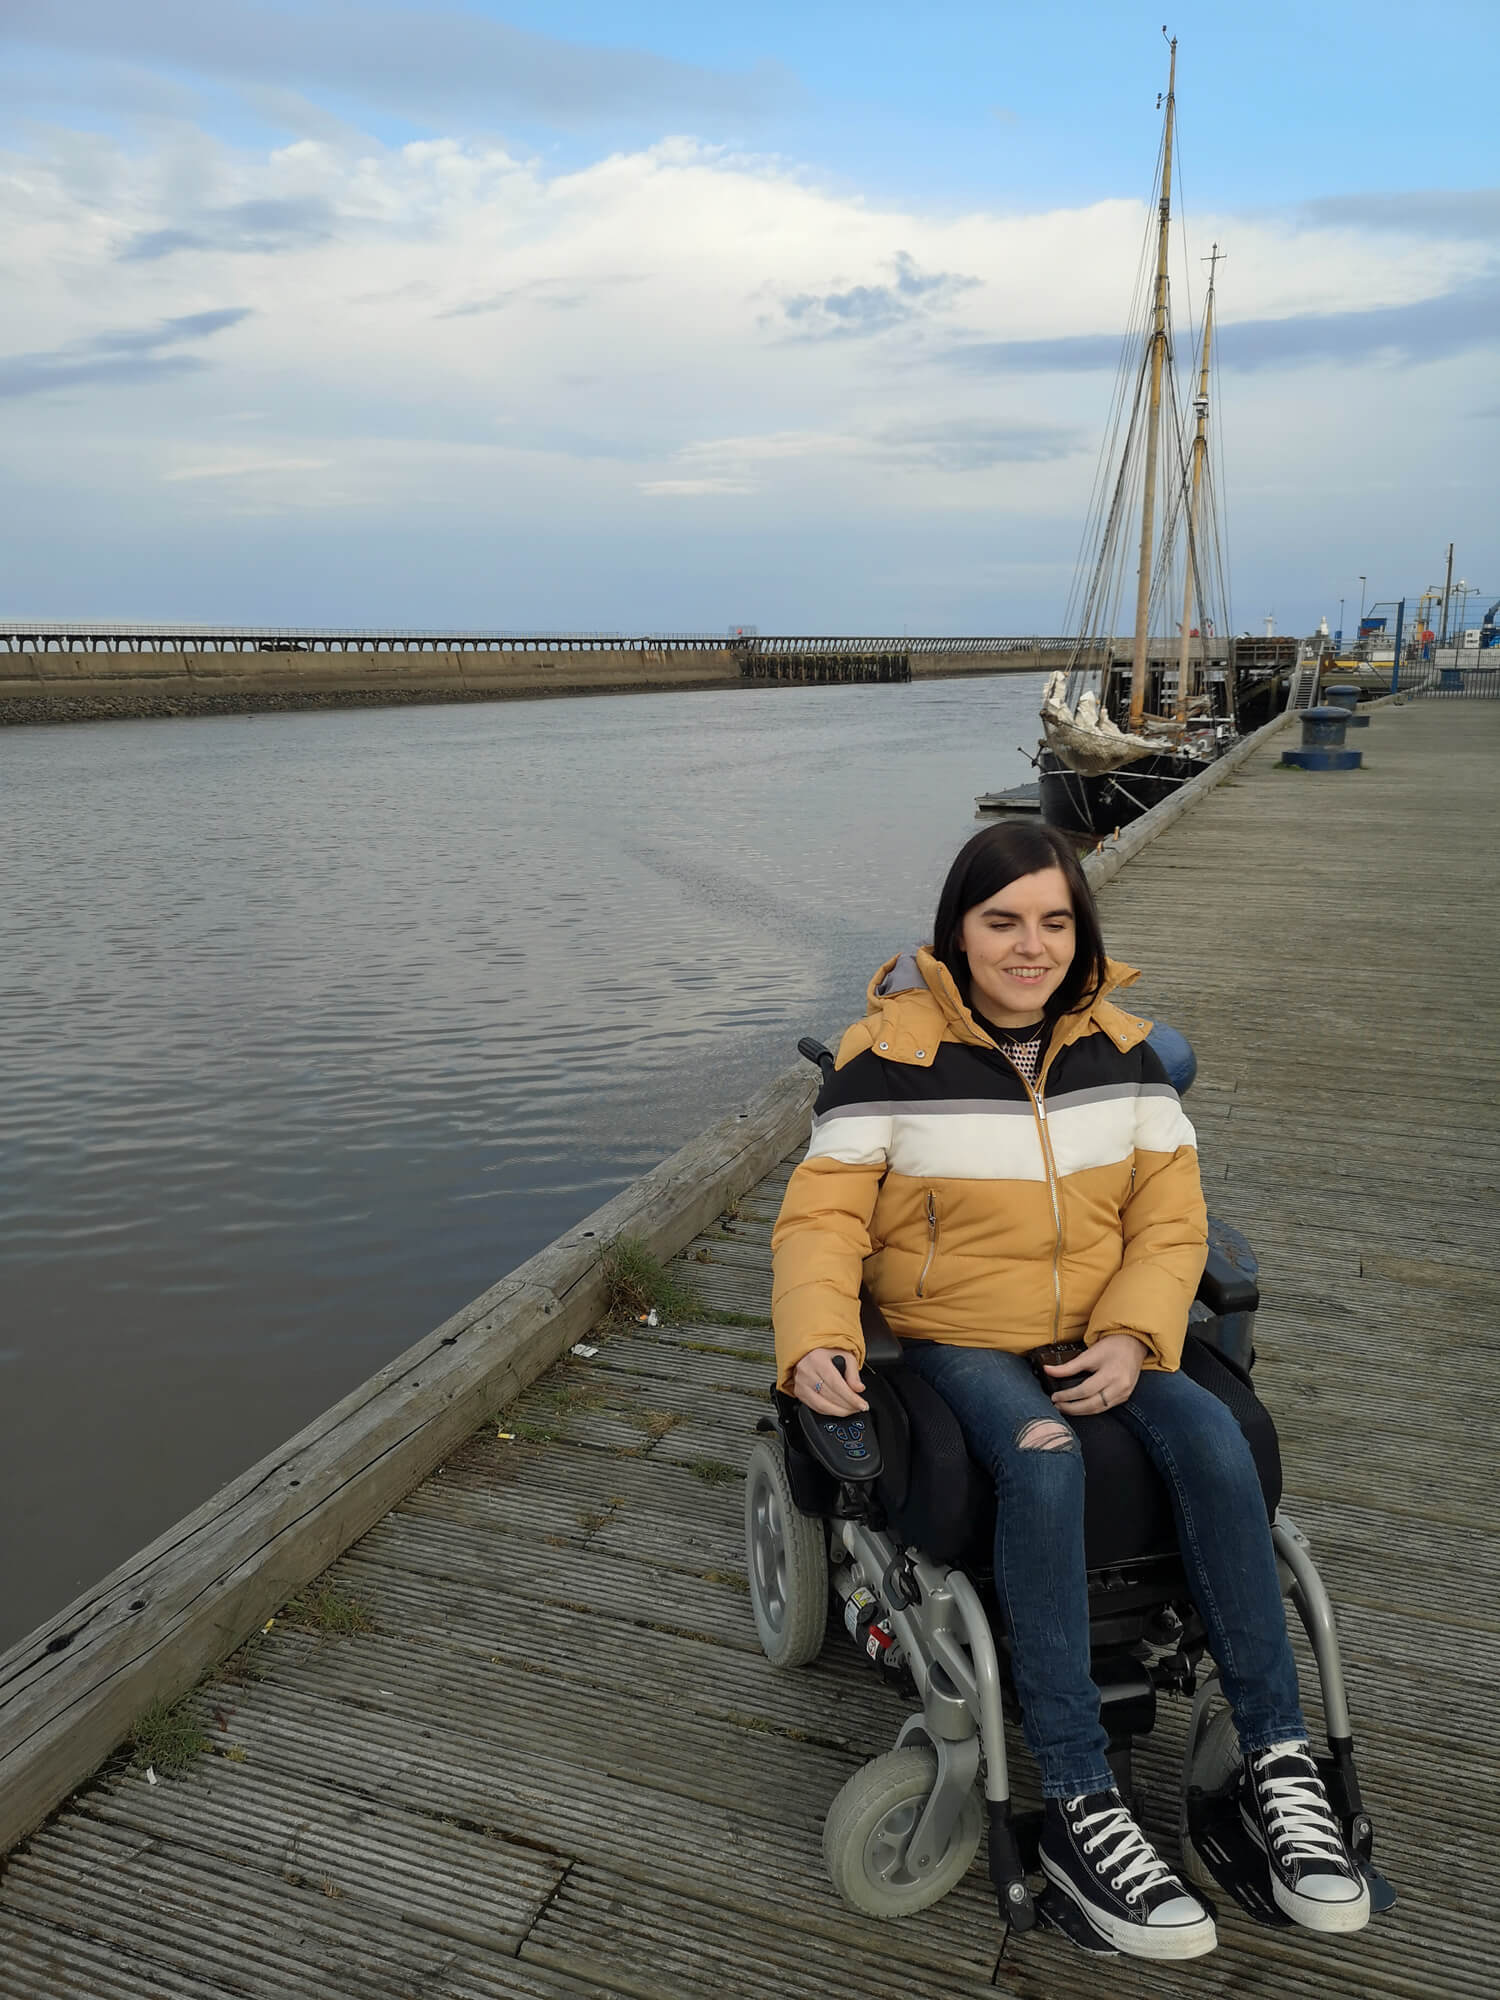 Emma is wearing a yellow, black and white puffy jacket, dark blue skinny jeans and black converse. She is on Blyth Harbour on a nice night. A boat is sitting behind Emma.